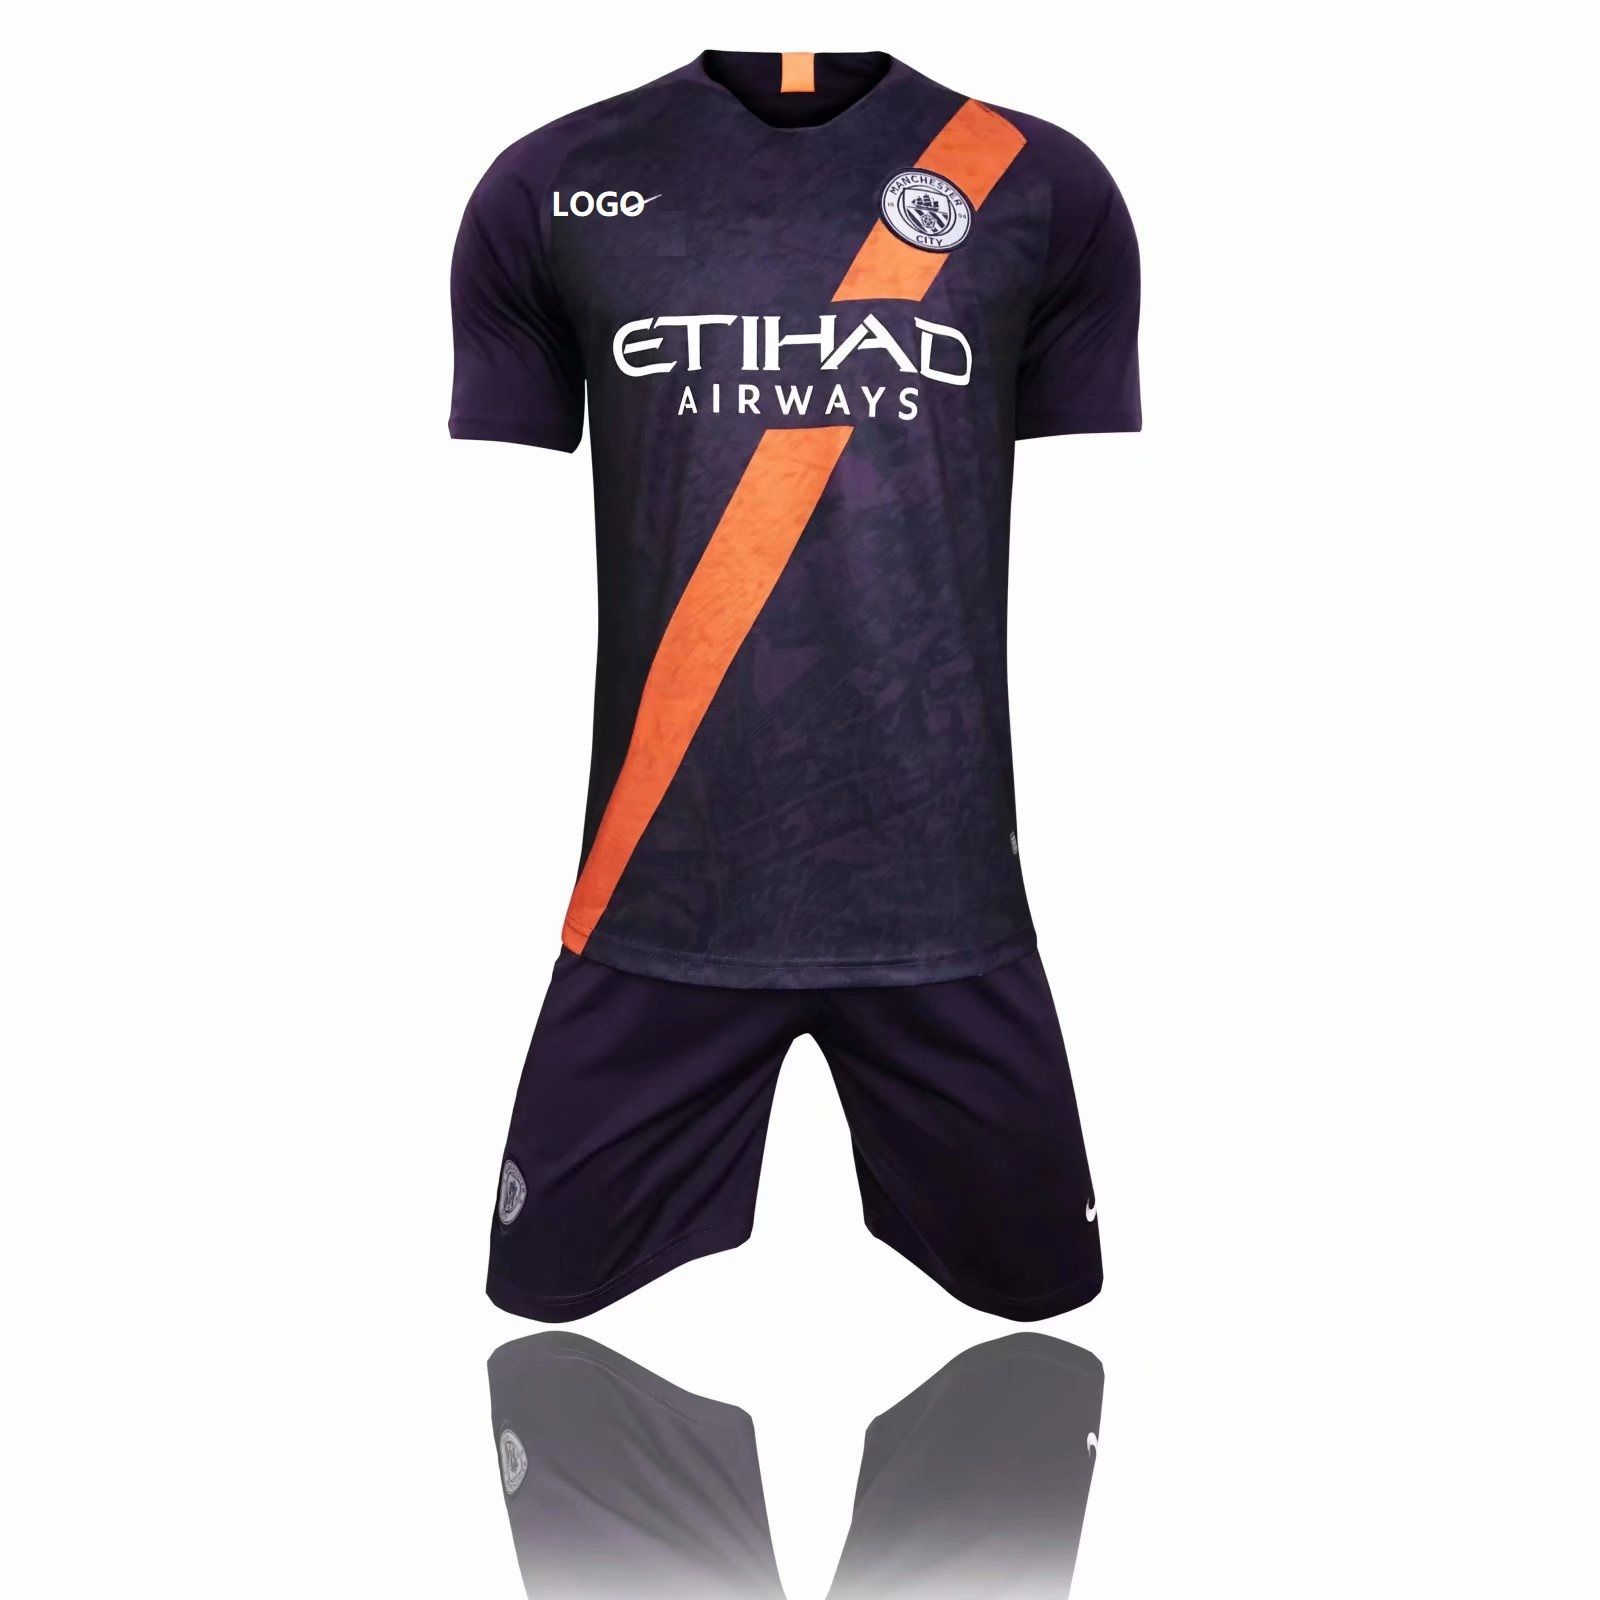 3e85889fa6 2018 19 AAA Men Manchester City third away Soccer Jersey Uniform Adult  Football Kits